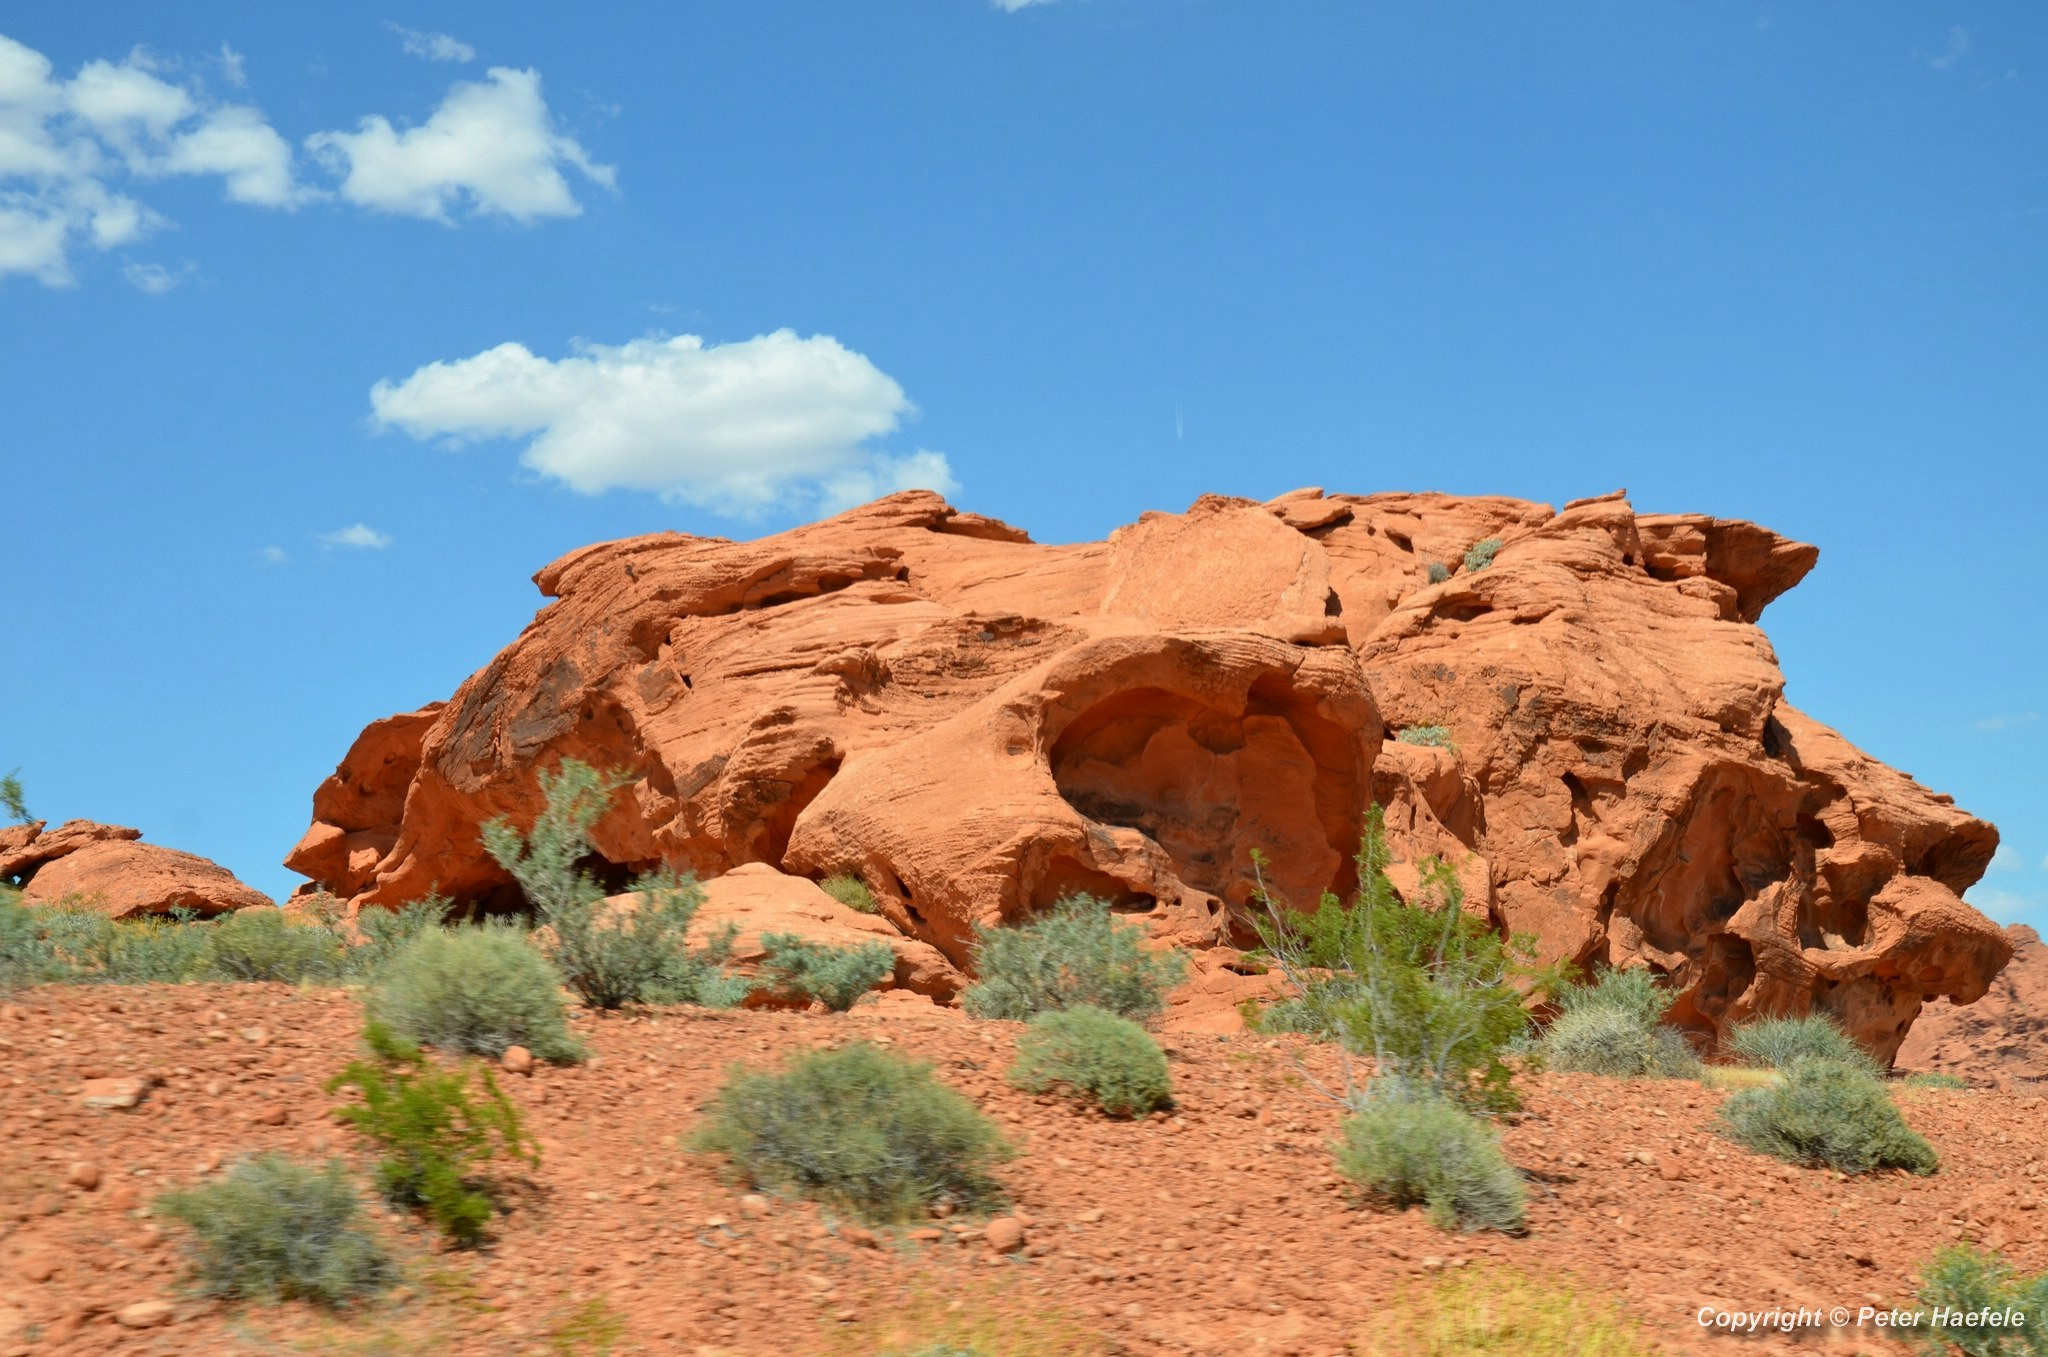 Roadtrip USA - Valley of Fire State Park - Nevada